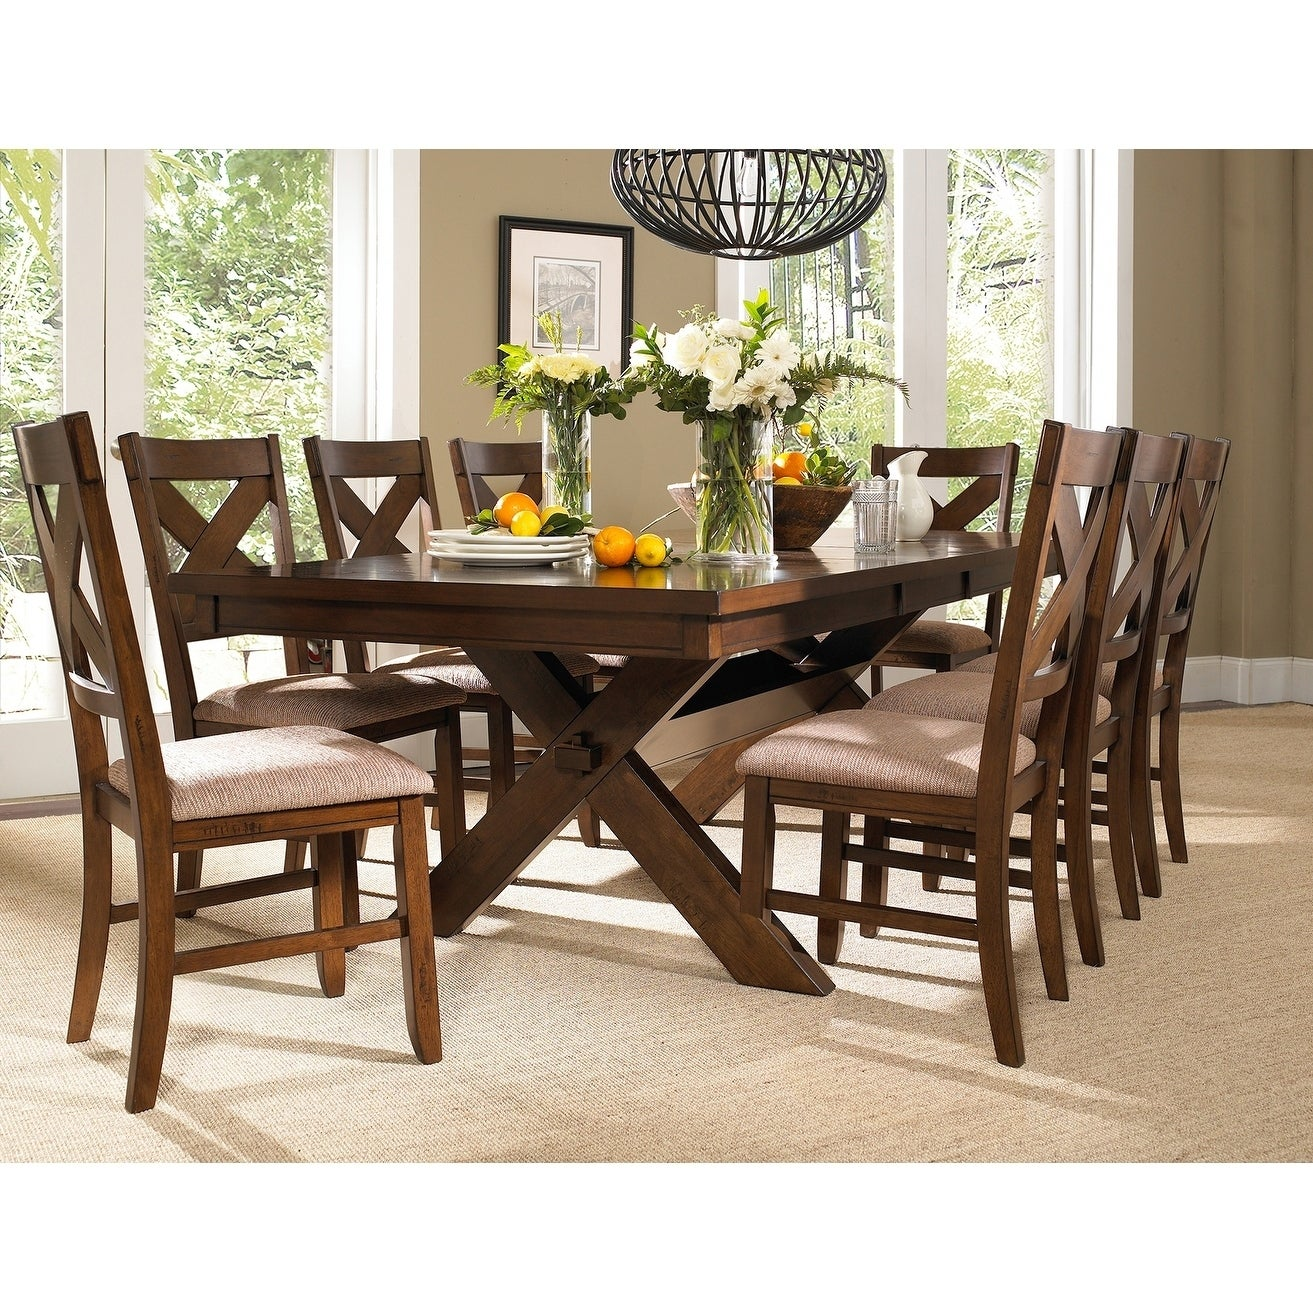 Beautiful Shop 9 Piece Solid Wood Dining Set With Table And 8 Chairs   Free Shipping  Today   Overstock.com   11691458